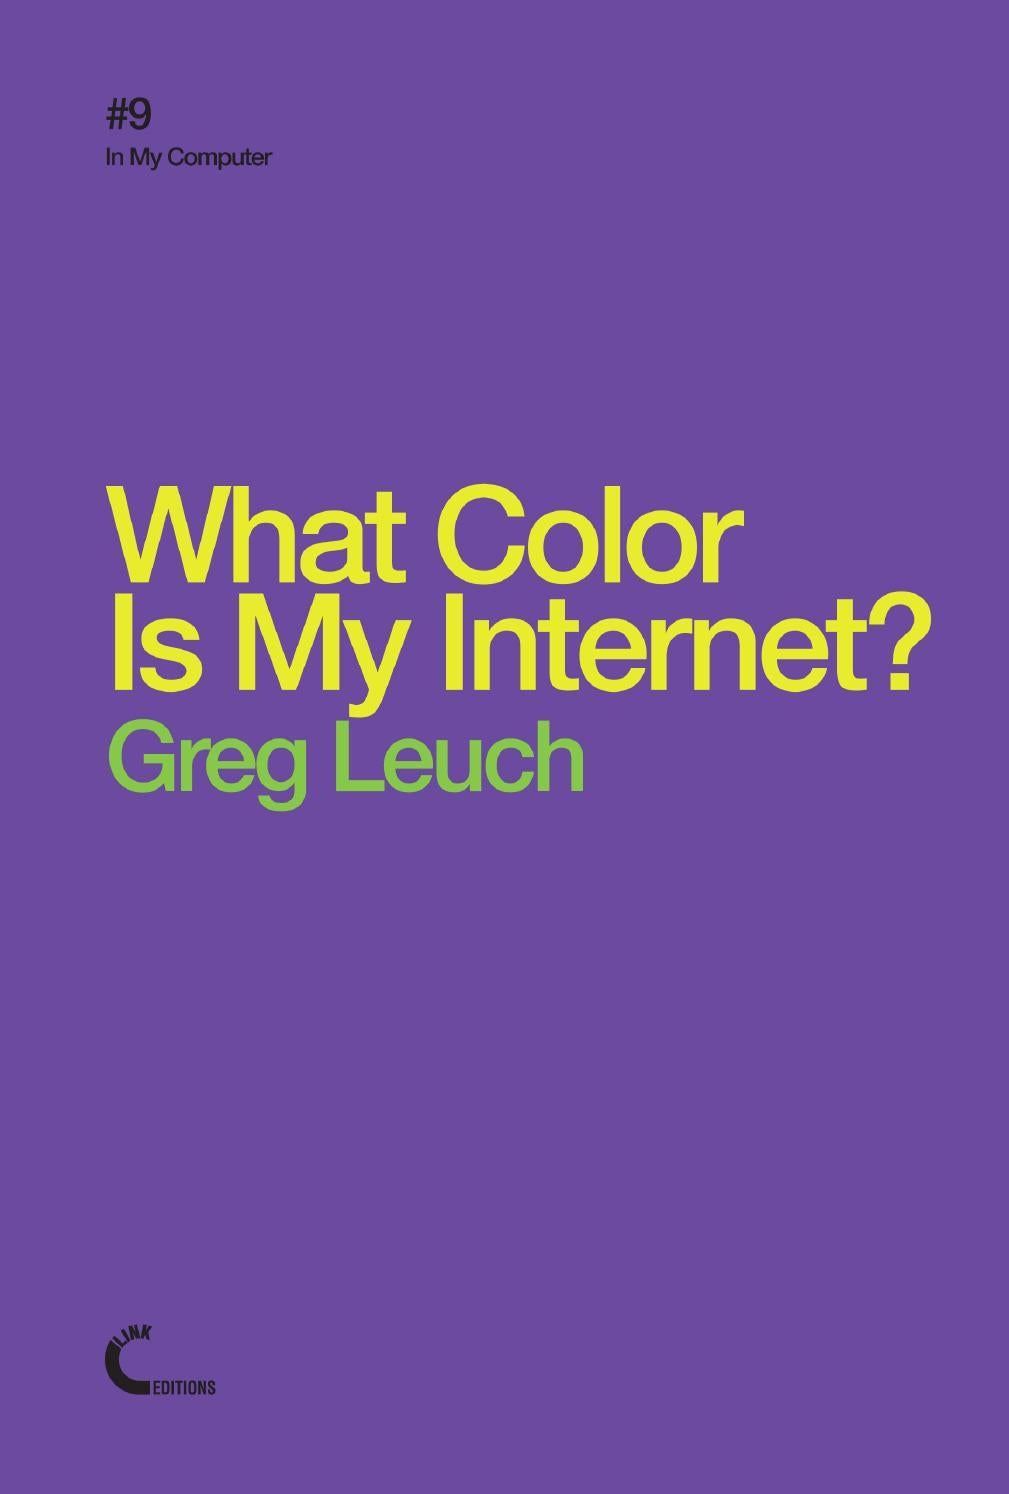 What Color Is My Internet? by Link Editions - issuu